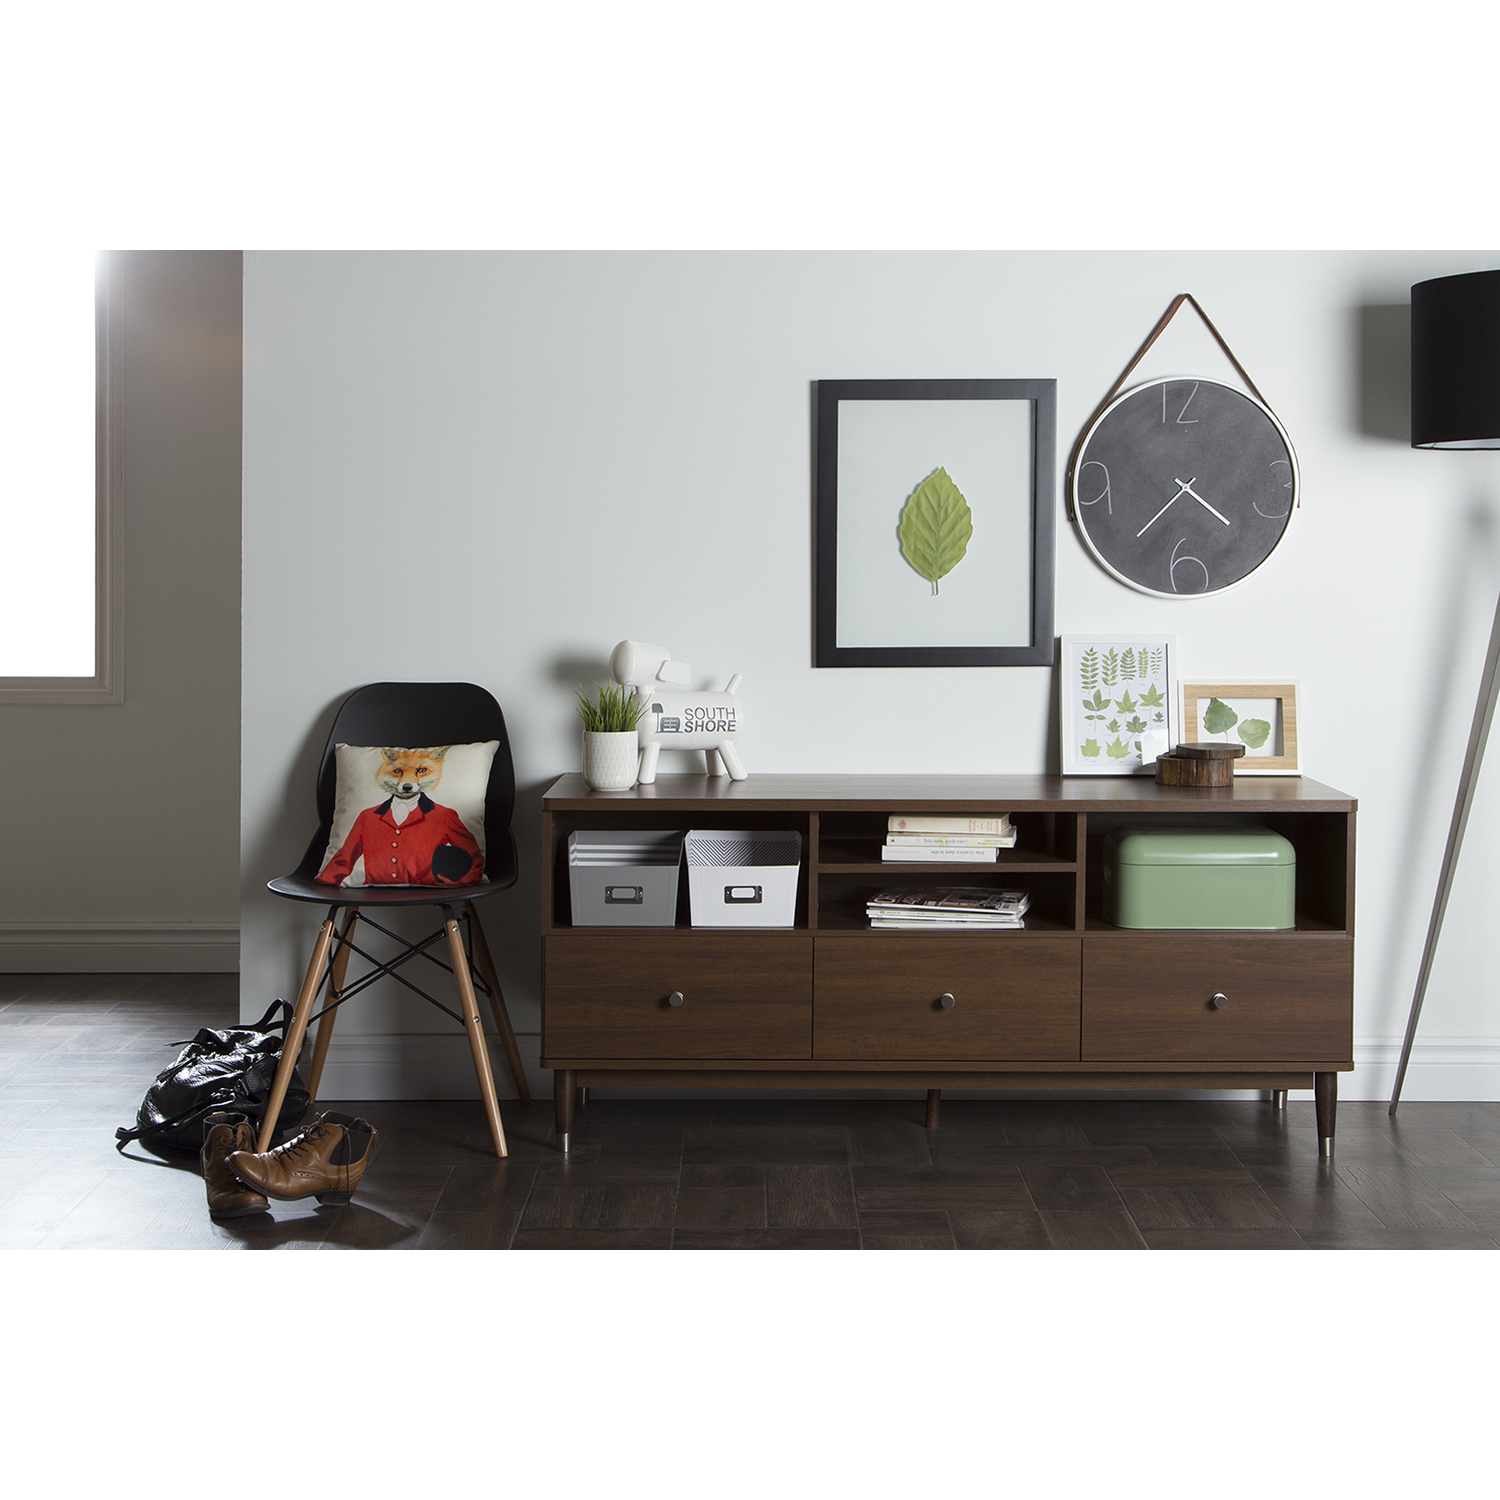 Olly TV Stand - 3 Drawers, Brown Walnut - SS-10011